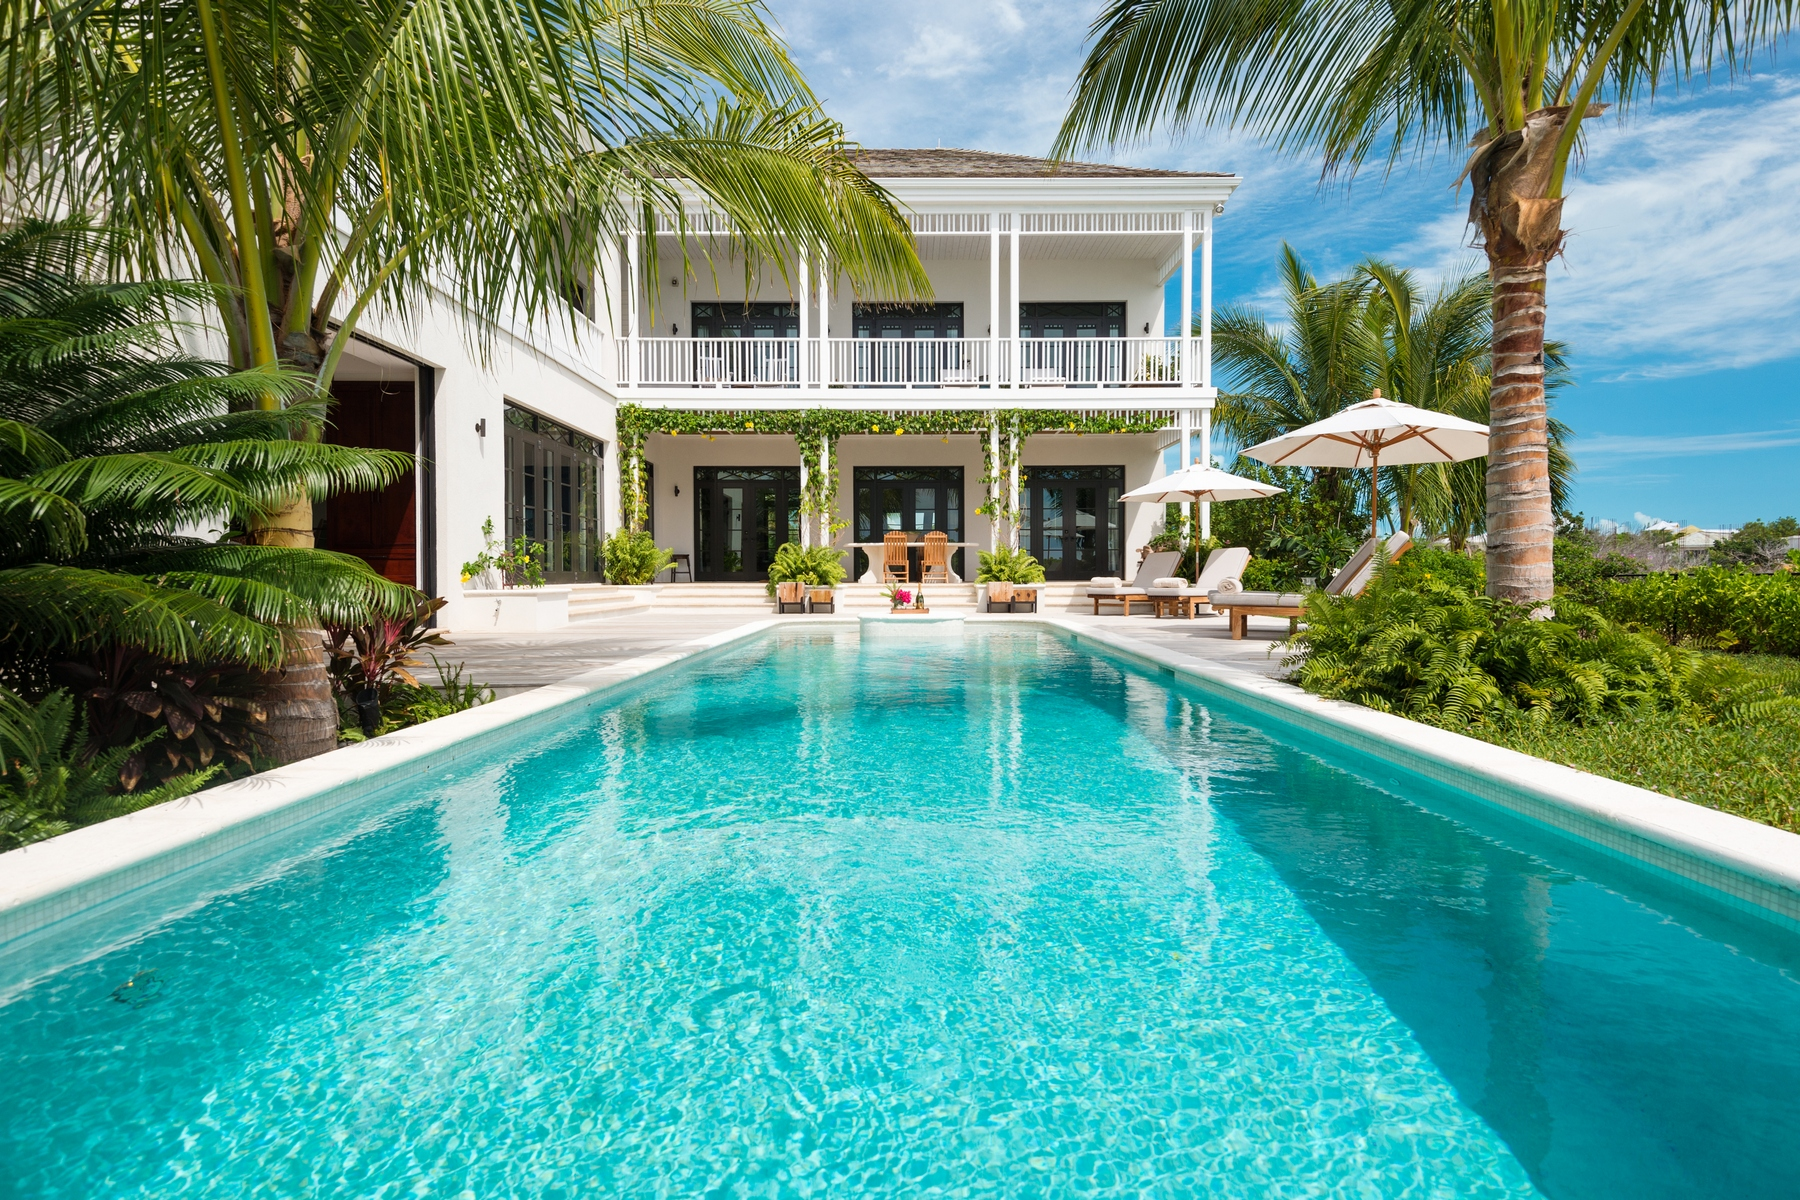 Maison unifamiliale pour l à louer à Saving Grace Vacation Rental 4 Tranquility Lane Grace Bay, Providenciales TC Îles Turques Et Caïques